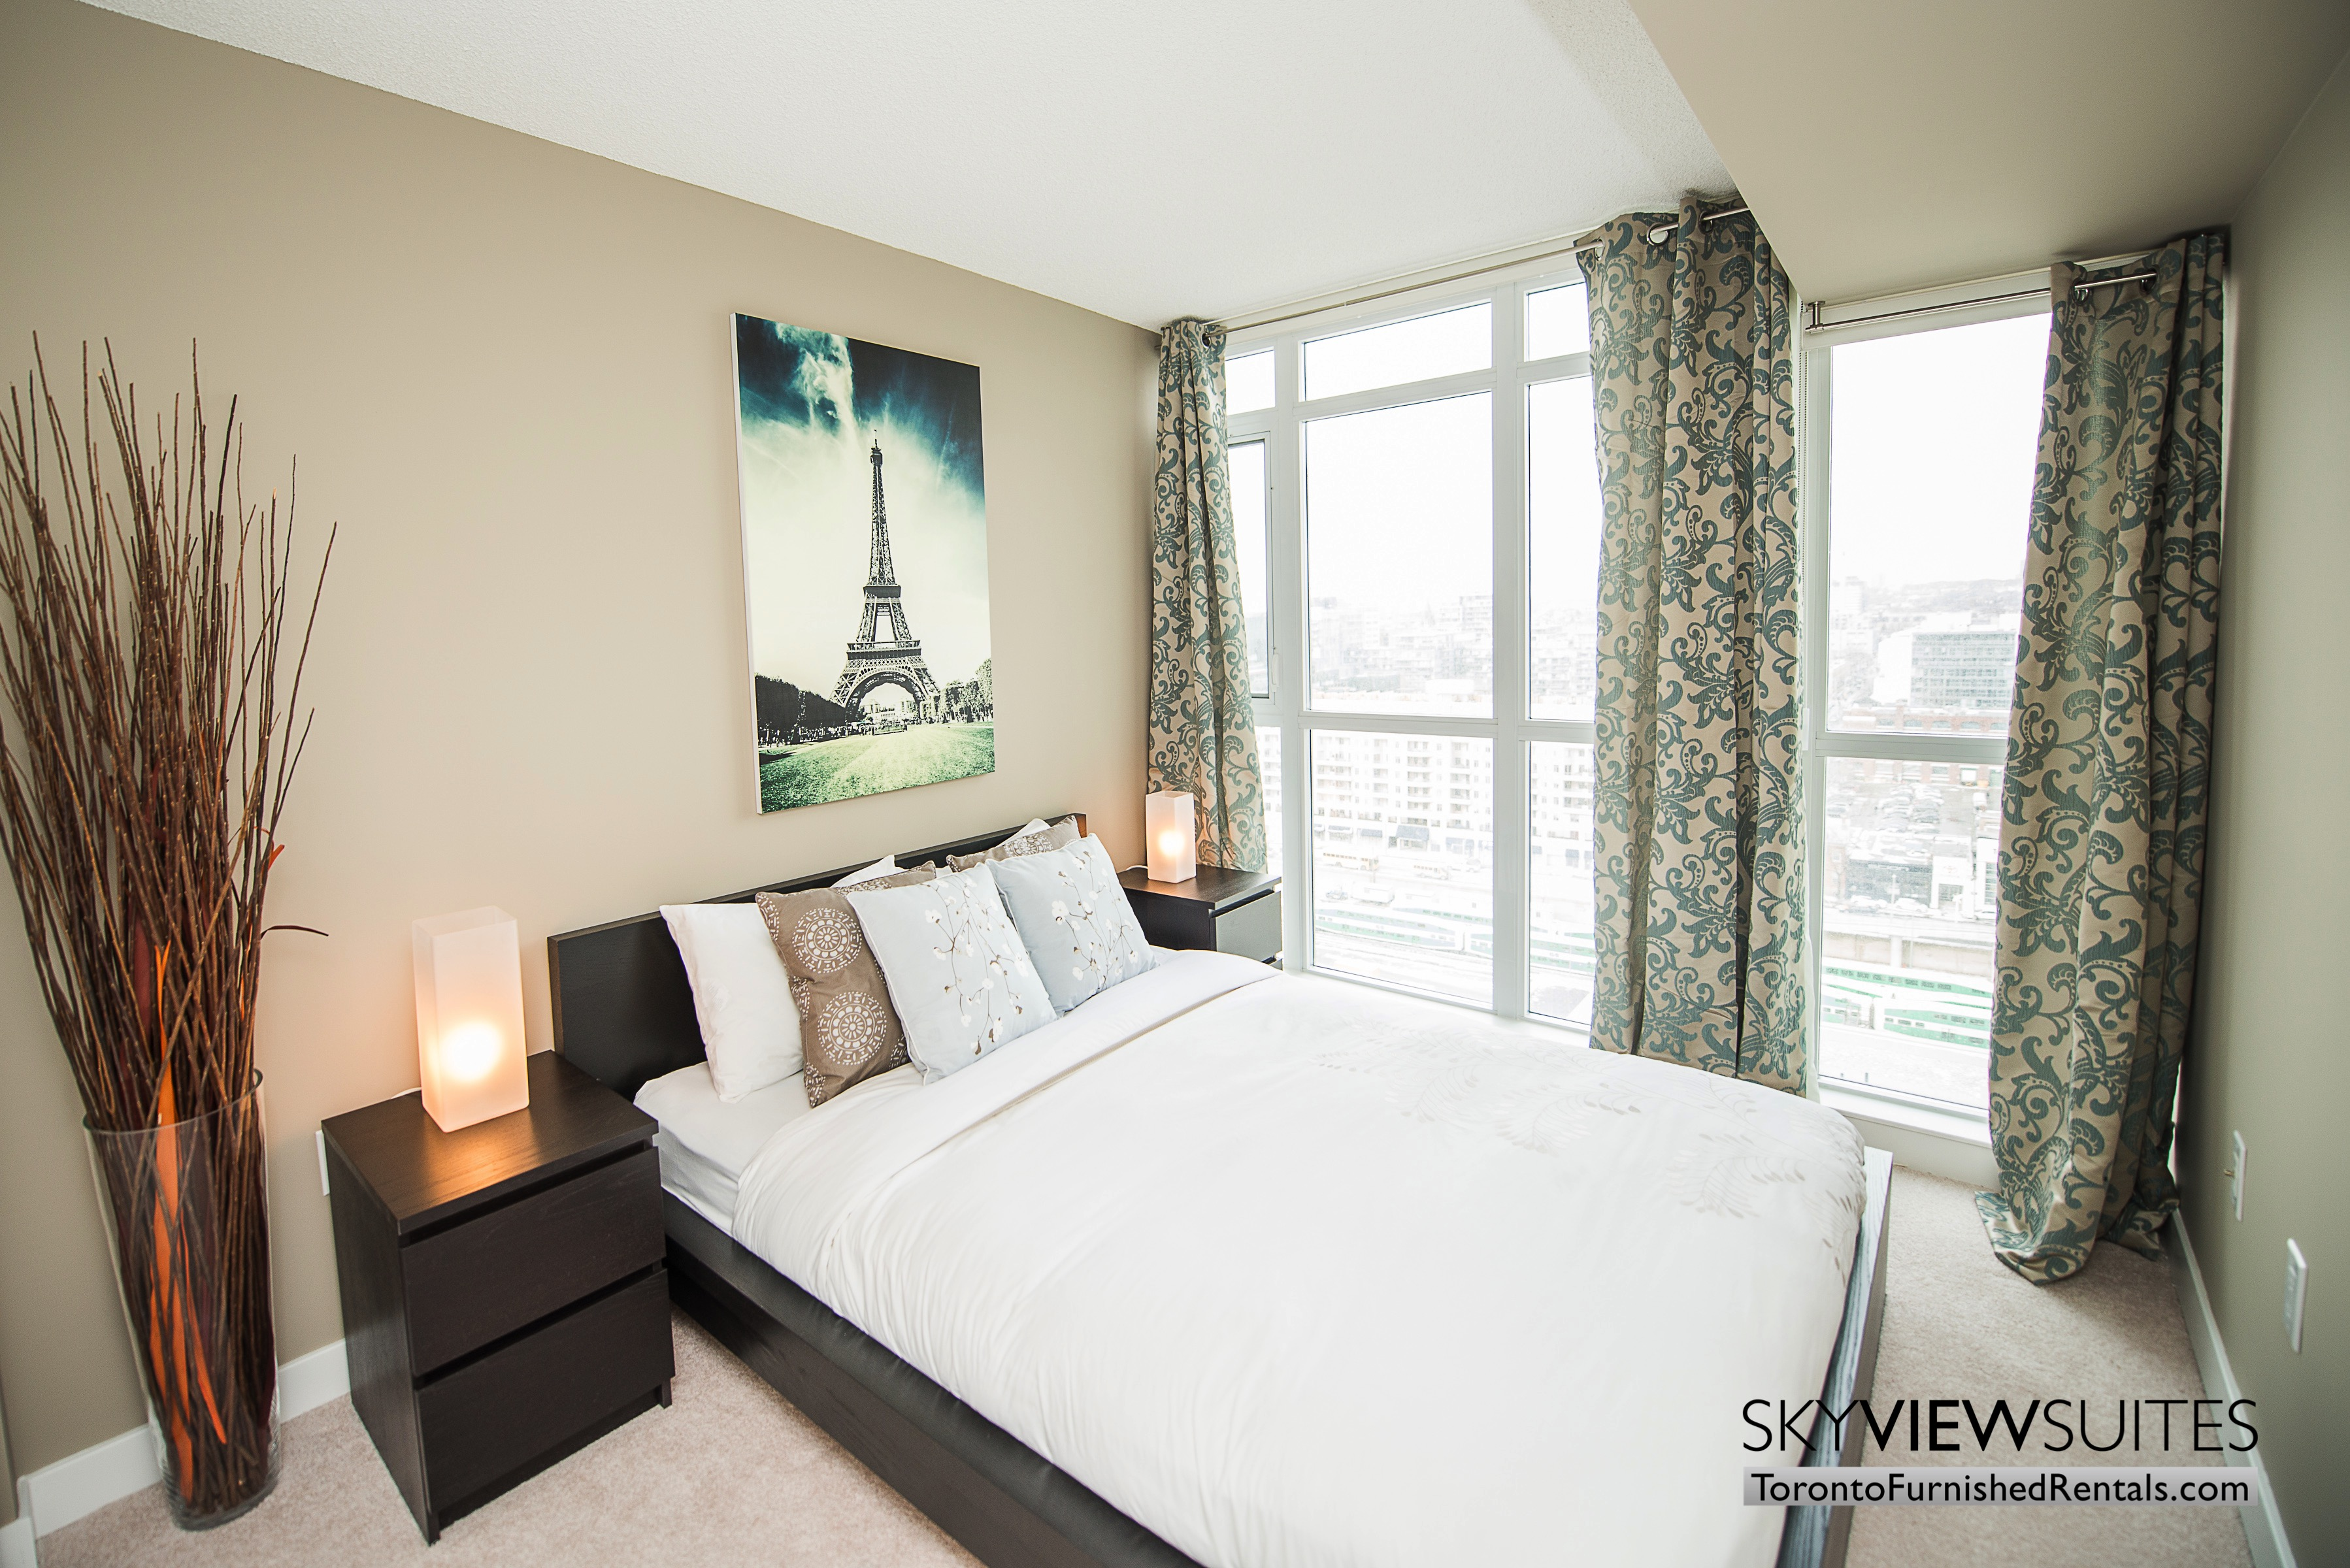 furnished apartments toronto parade bedroom with window